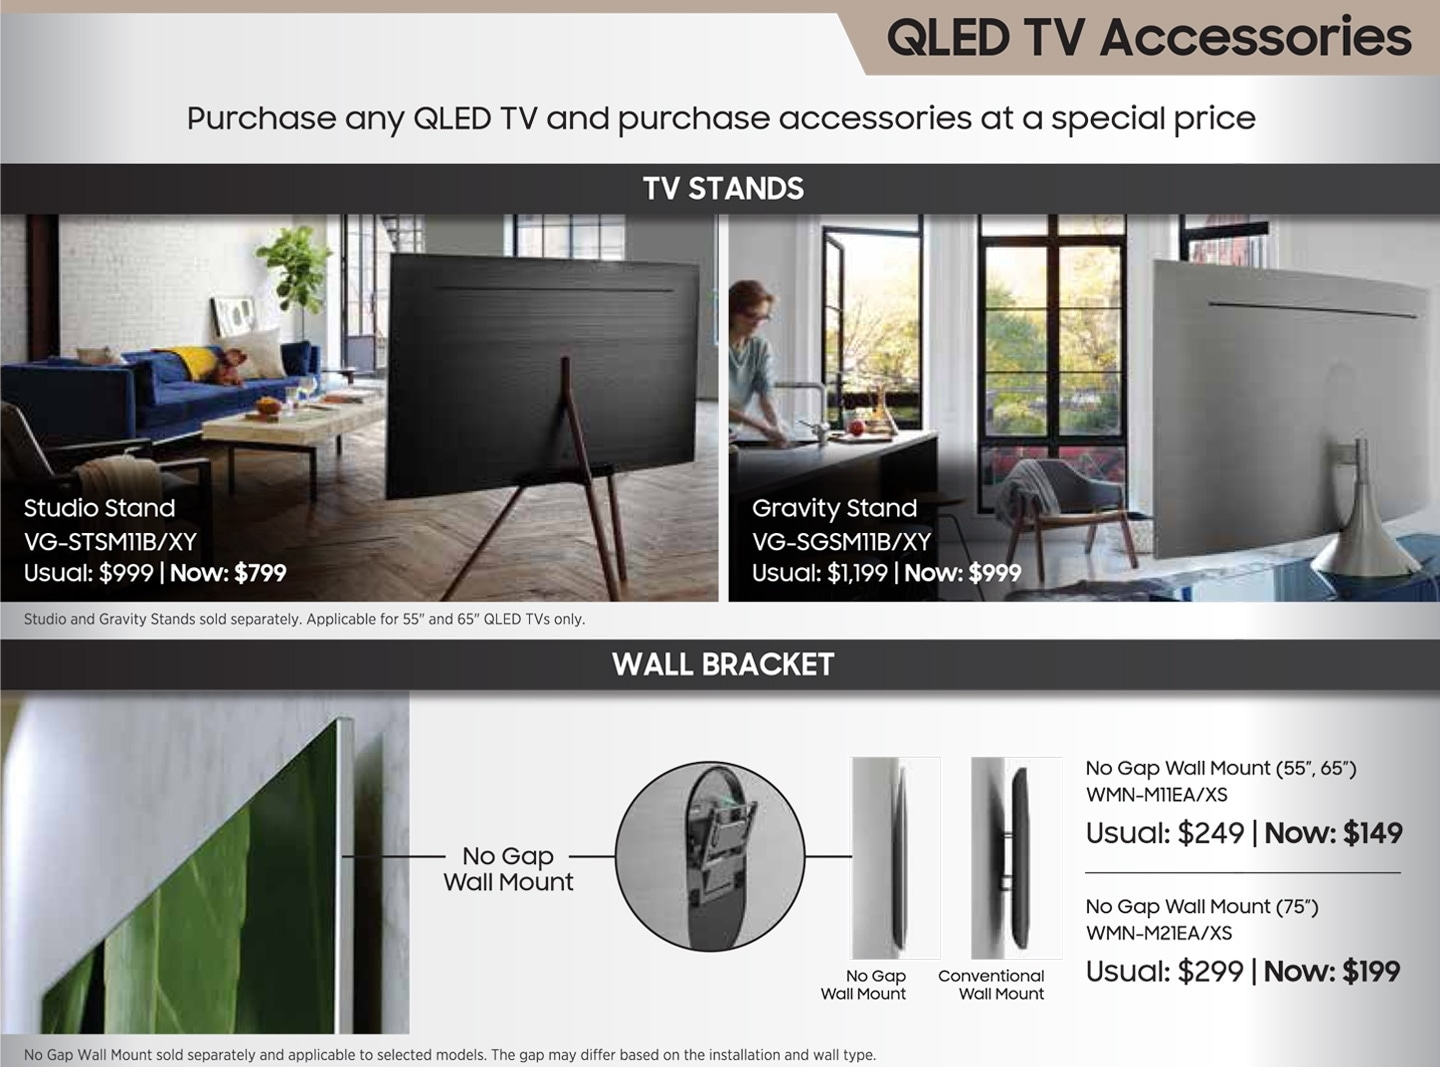 Personalise your QLED TV